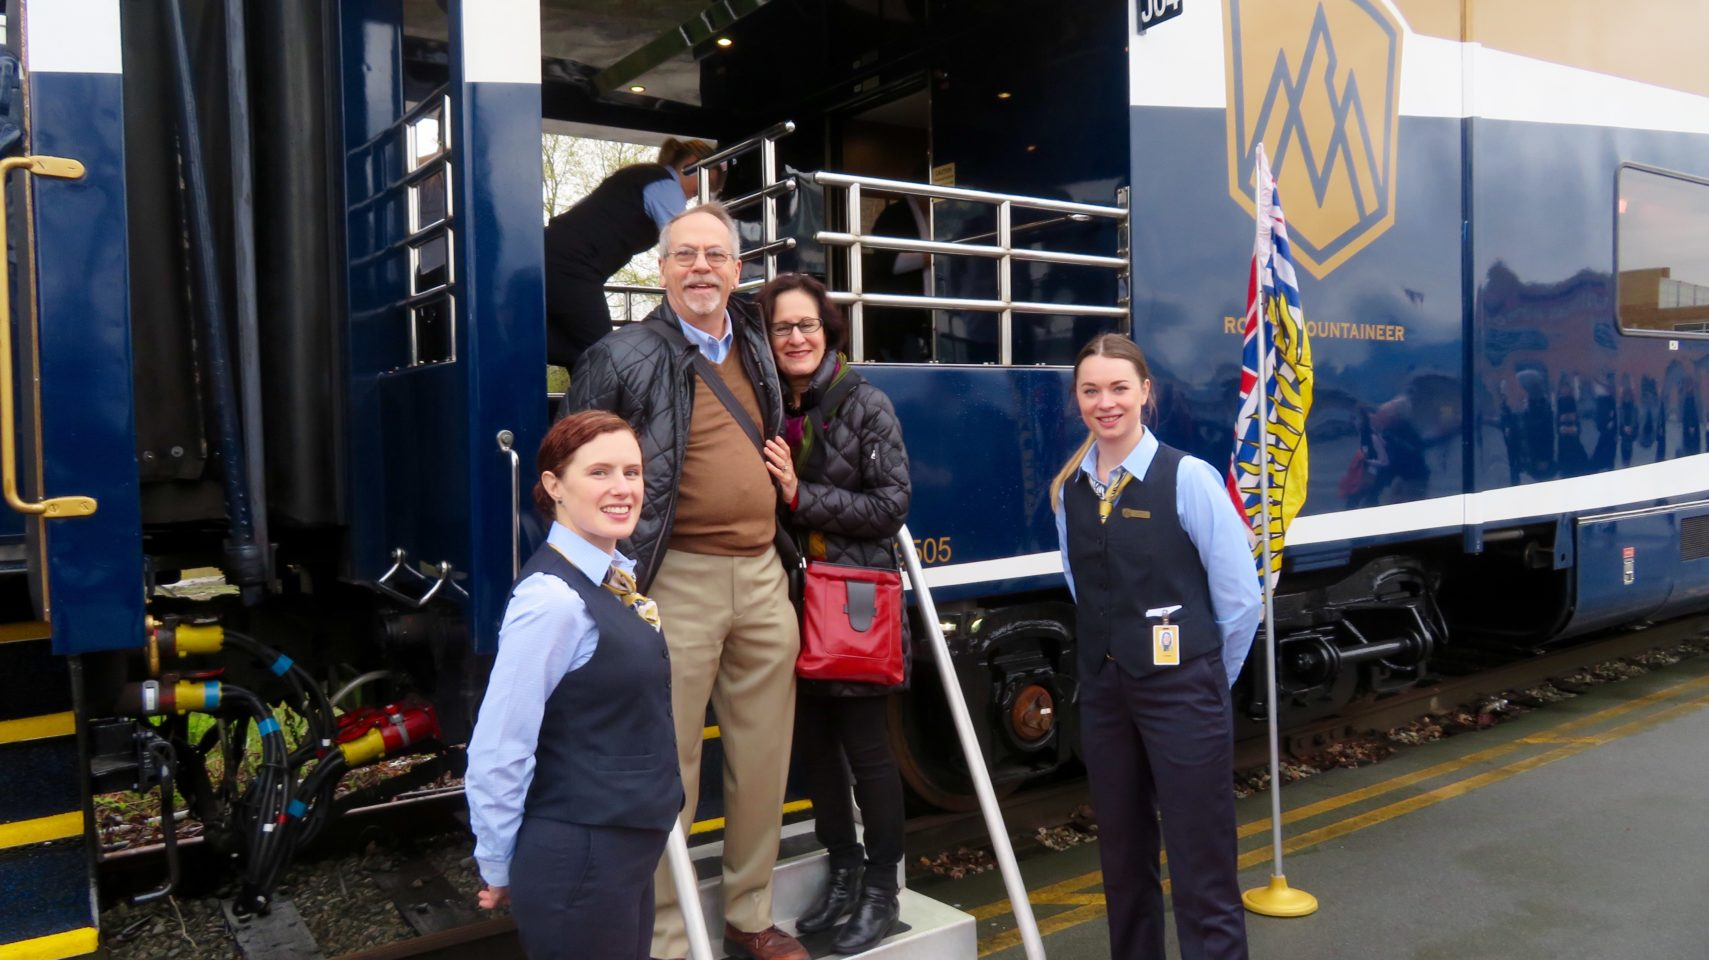 Lynn and Denis boarding RockyMountaineer train in Vancouver, Canada for the Trip of a Lifetime ...